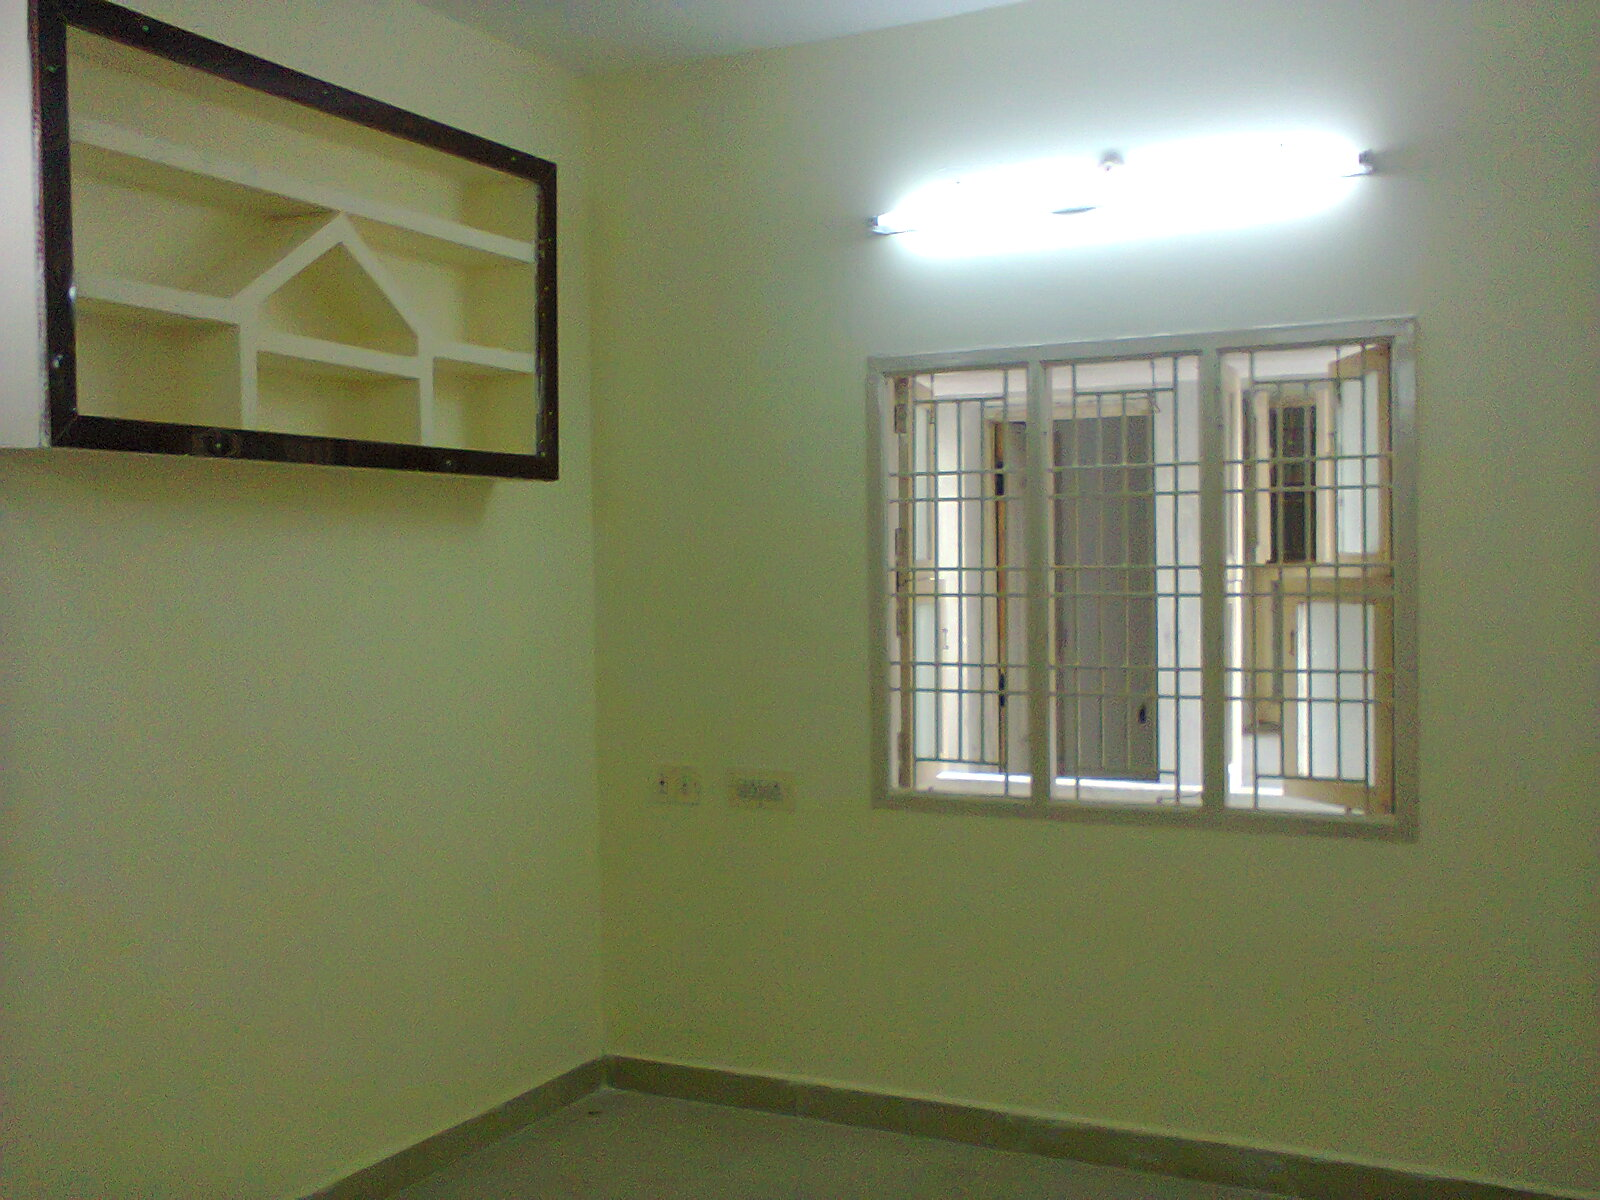 2 bhk flat near Zion Matriculation School,Thirumalai nagar, chrompet,chennai